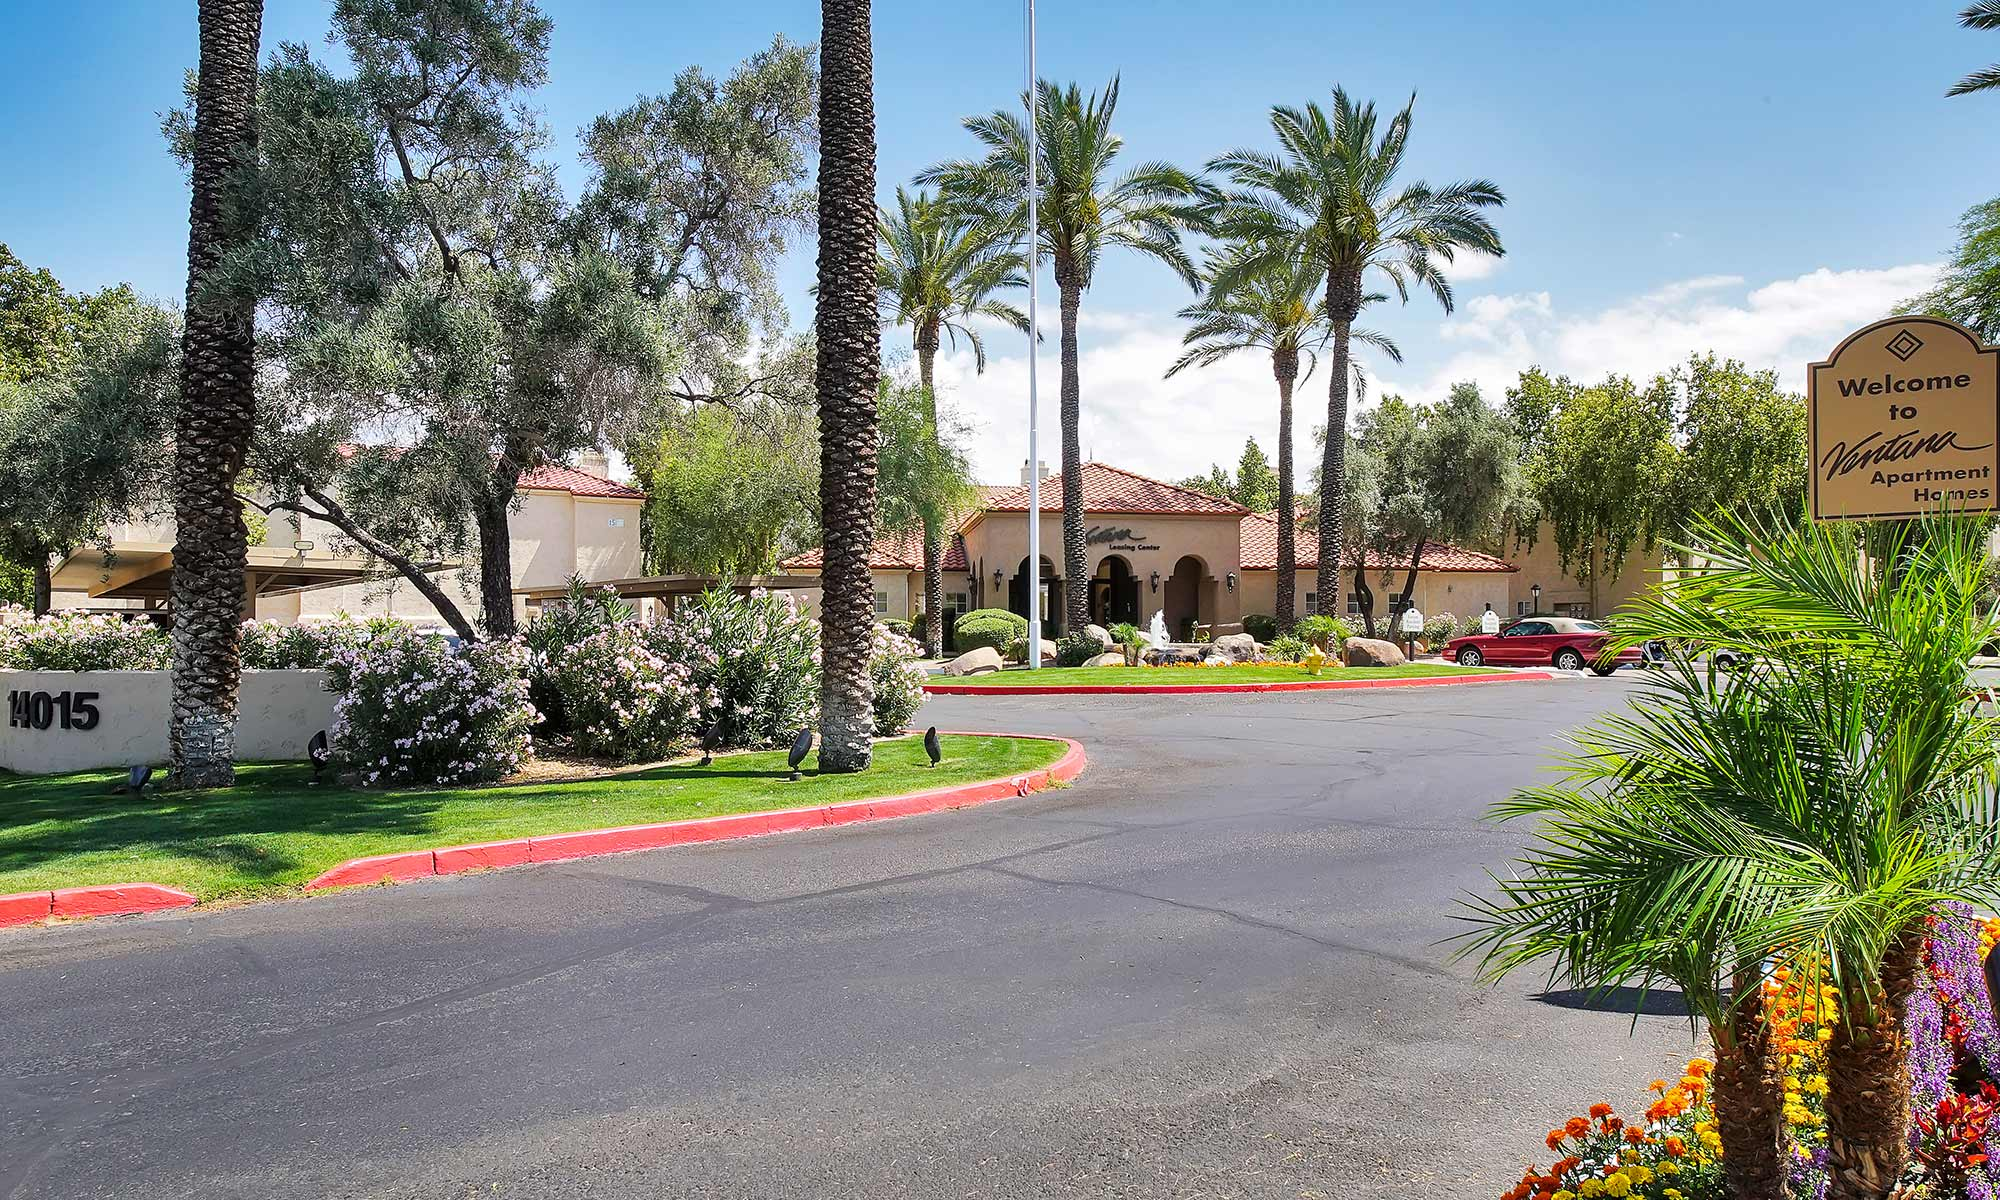 https://g5-assets-cld-res.cloudinary.com/image/upload/q_auto,f_auto,fl_lossy/g5/g5-c-in8slfts-gaines-investment-trust/g5-cl-57mziopfp-ventana-luxury-apartment-homes/uploads/ventanaluxuryaptsm-hero-sized.jpg